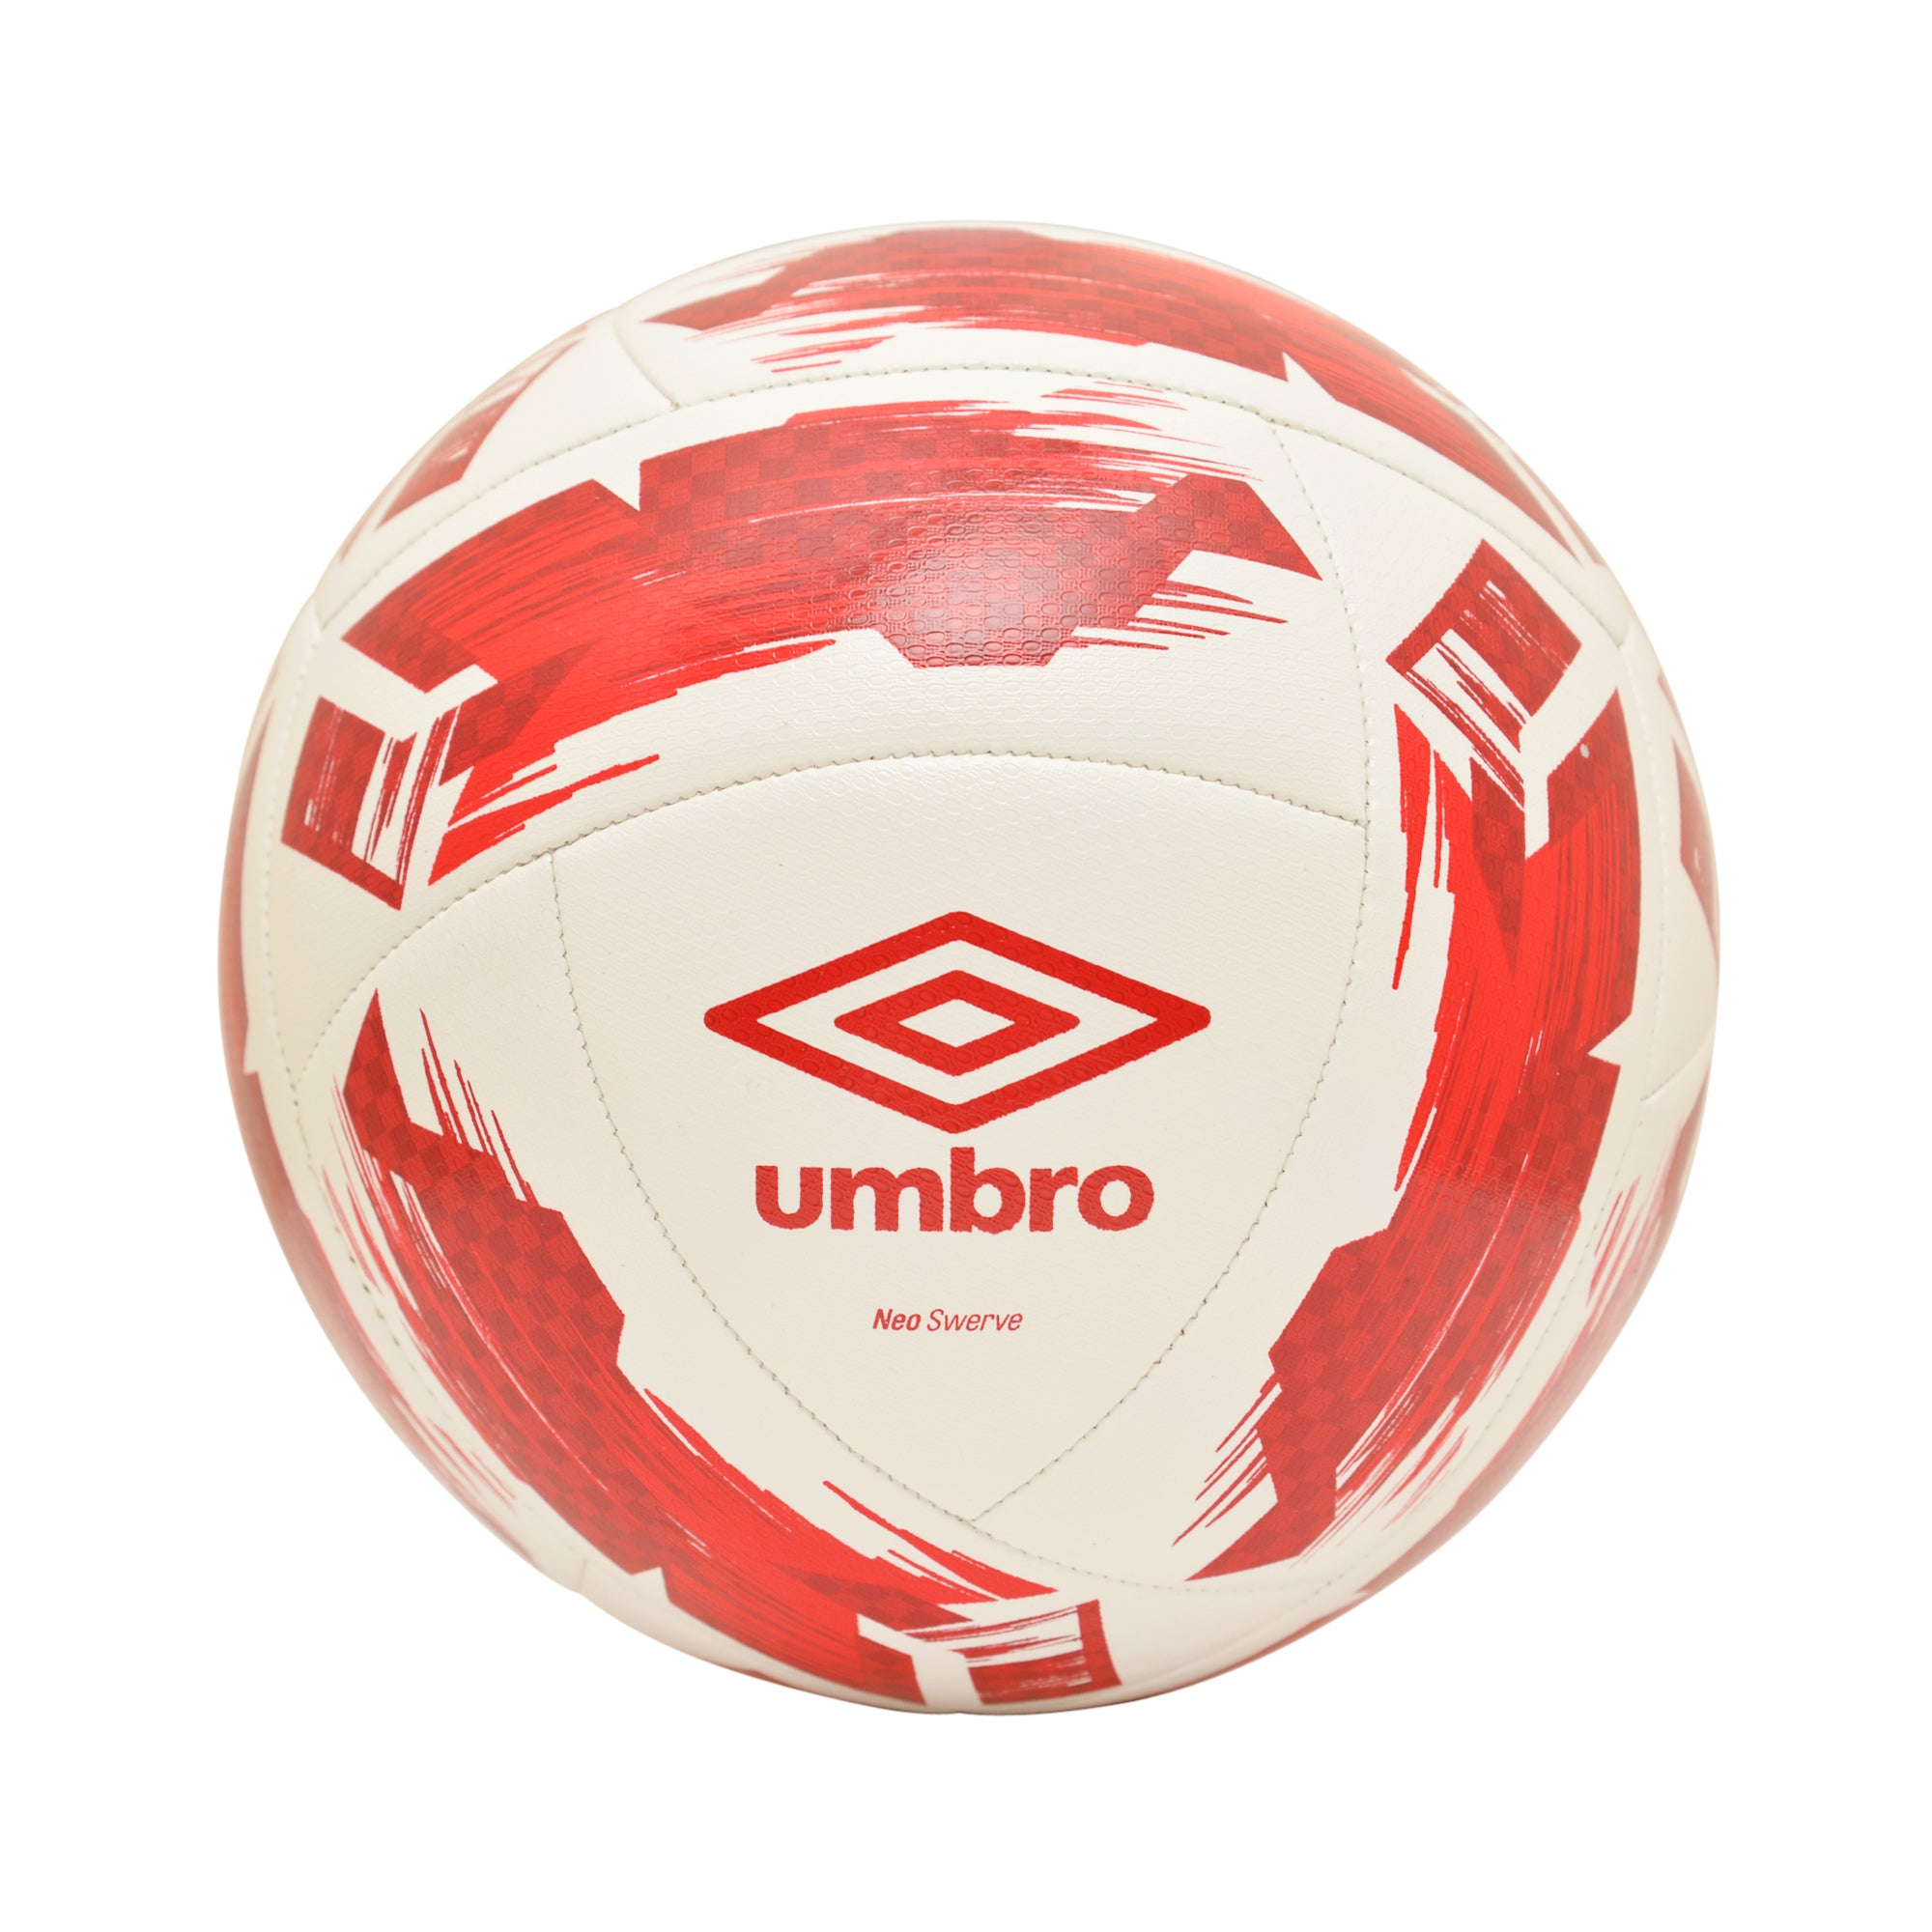 Umbro Neo Swerve - White/Red